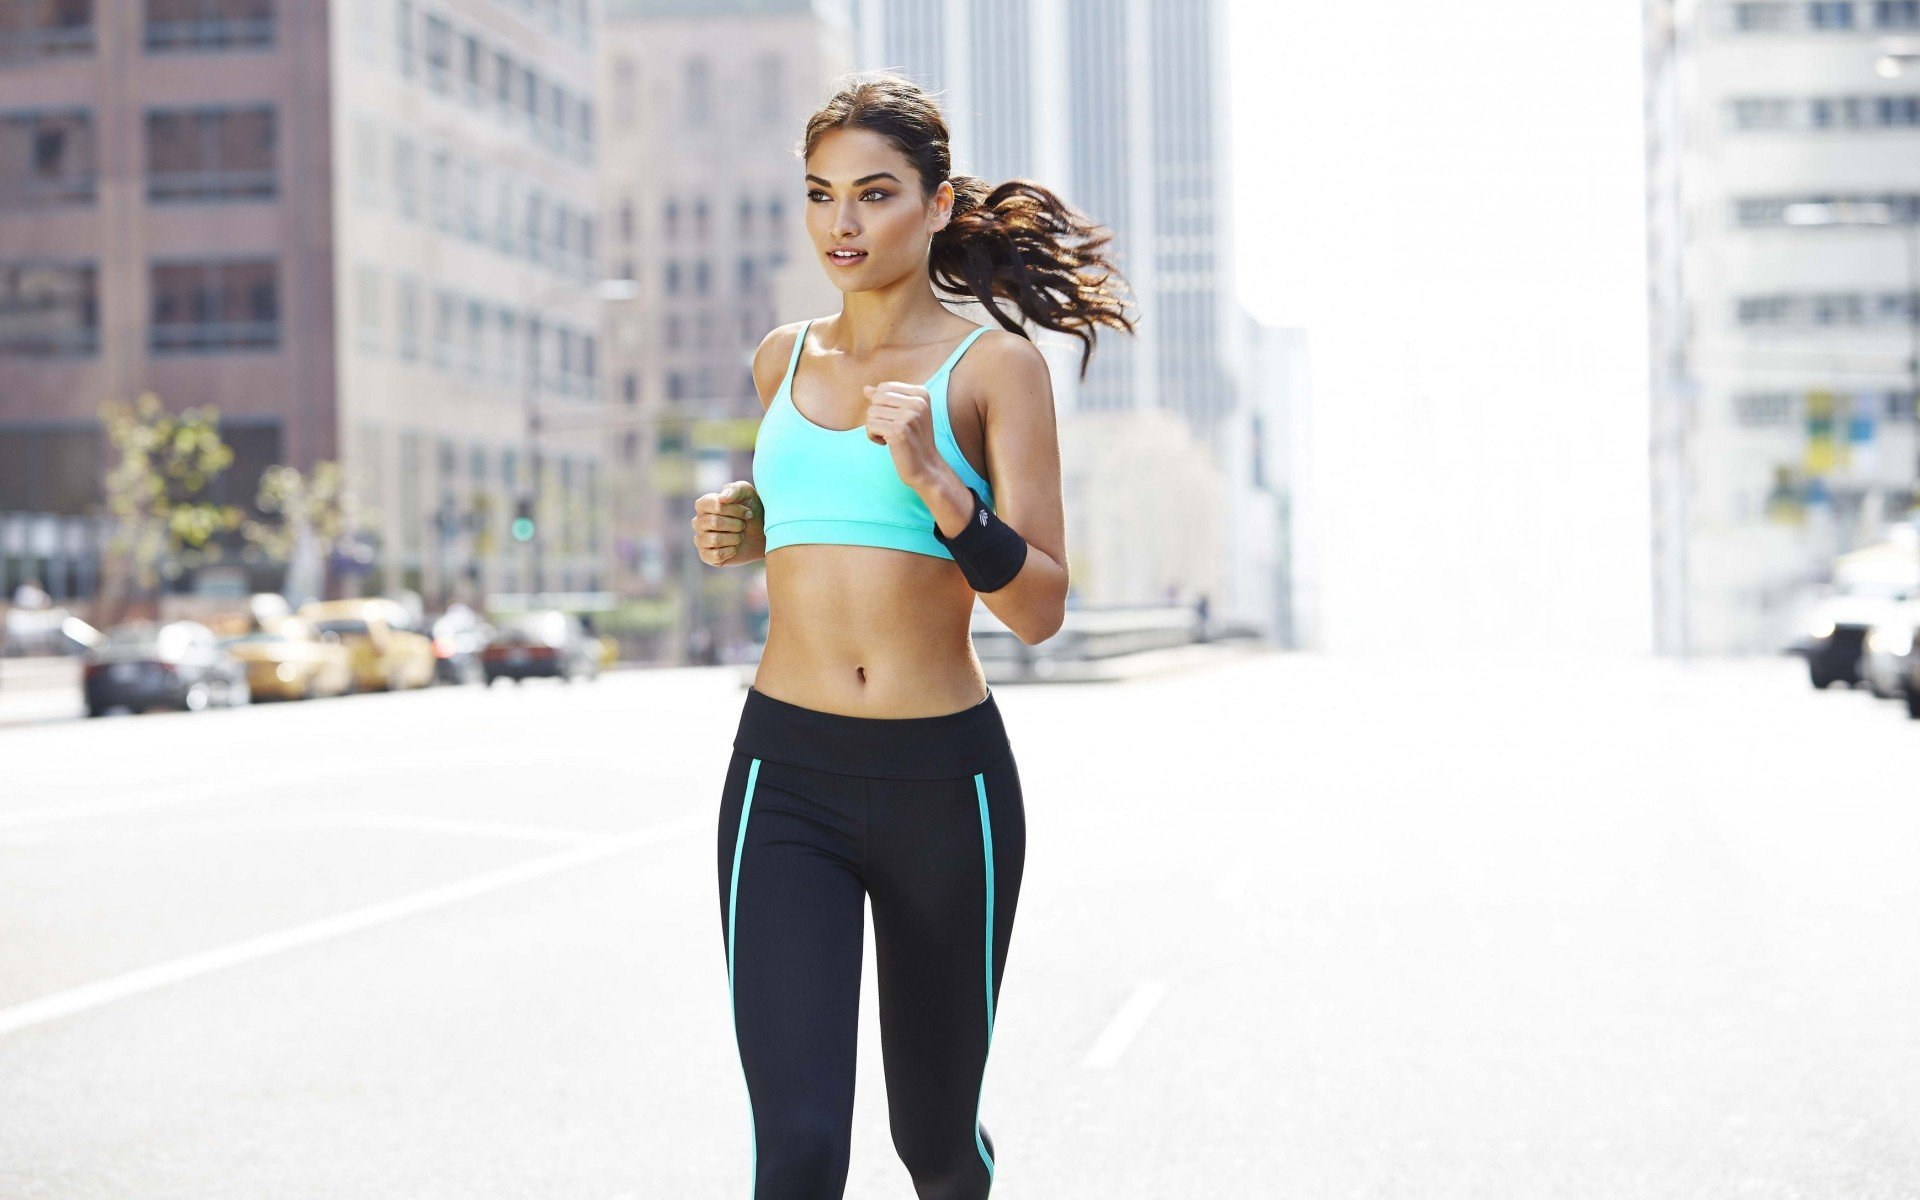 running-girl-in-street-city-hd-wallpapers